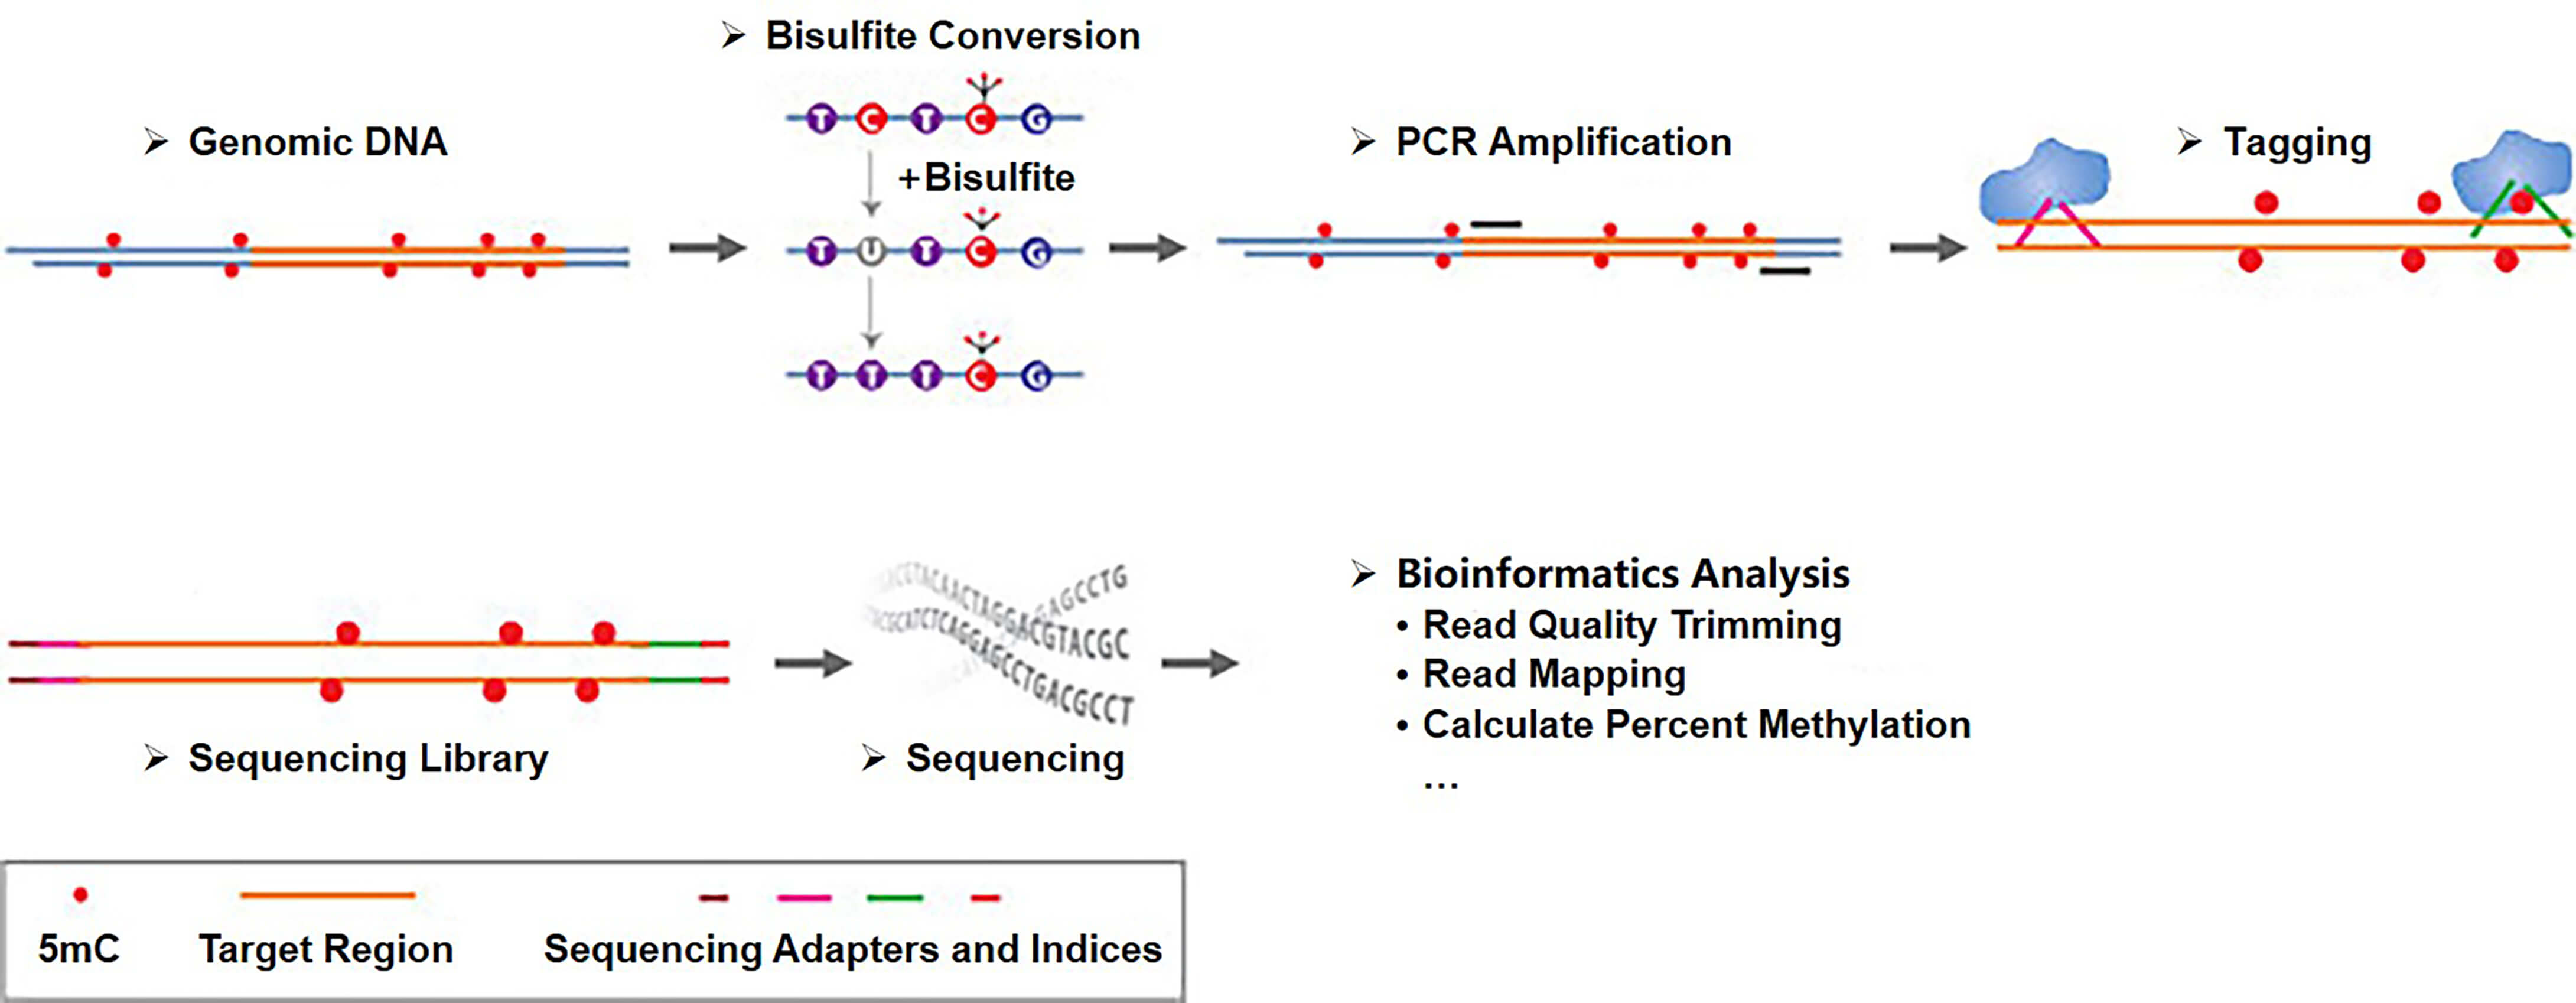 Workflow of targeted bisulfite sequencing based on region-specific PCR amplification